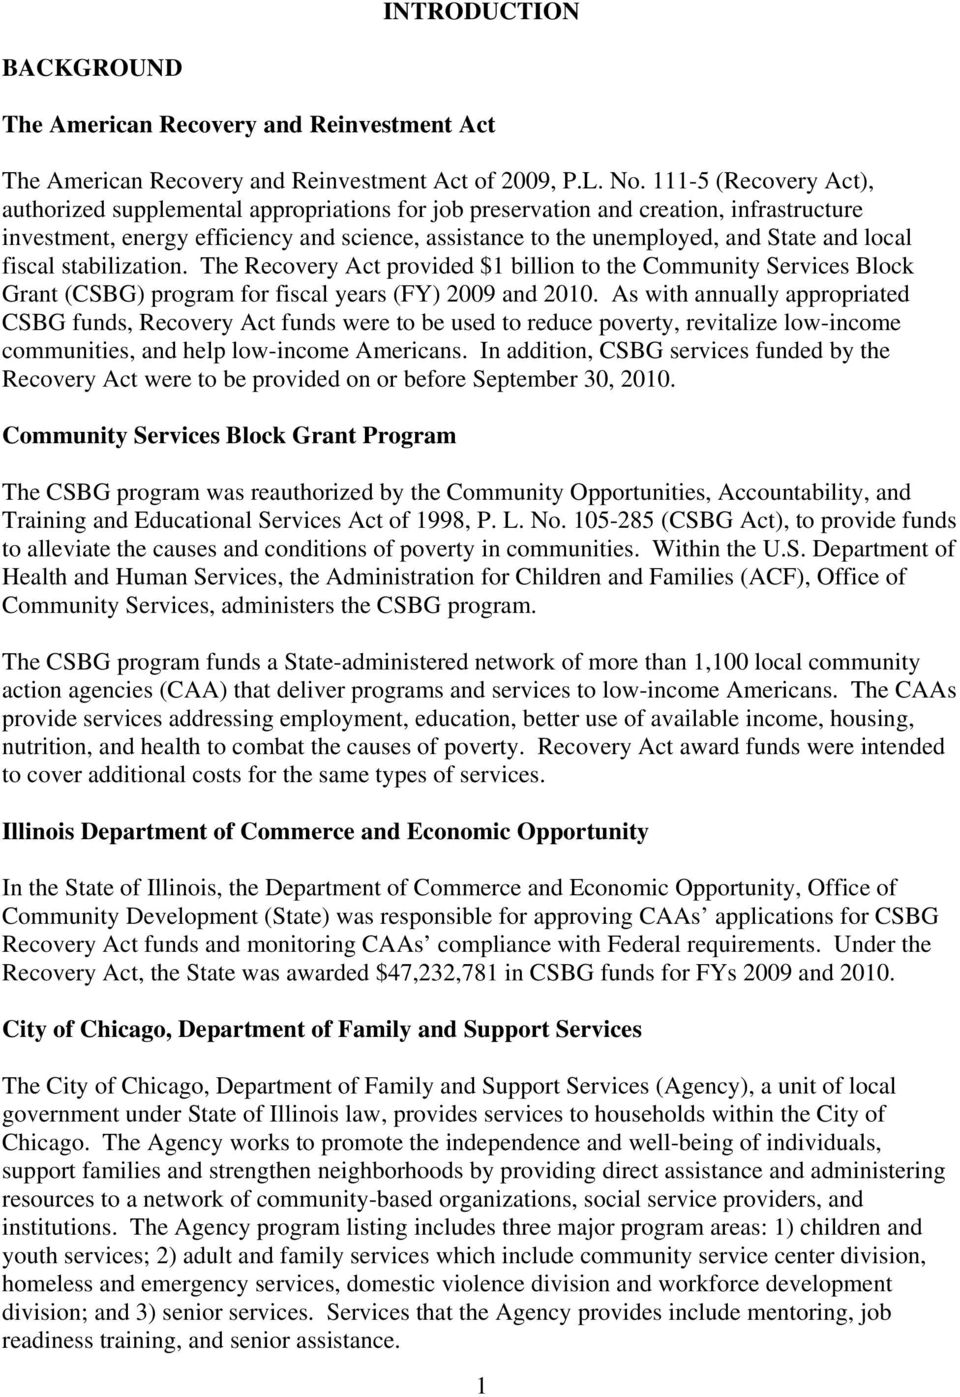 local fiscal stabilization. The Recovery Act provided $1 billion to the Community Services Block Grant (CSBG) program for fiscal years (FY) 2009 and 2010.